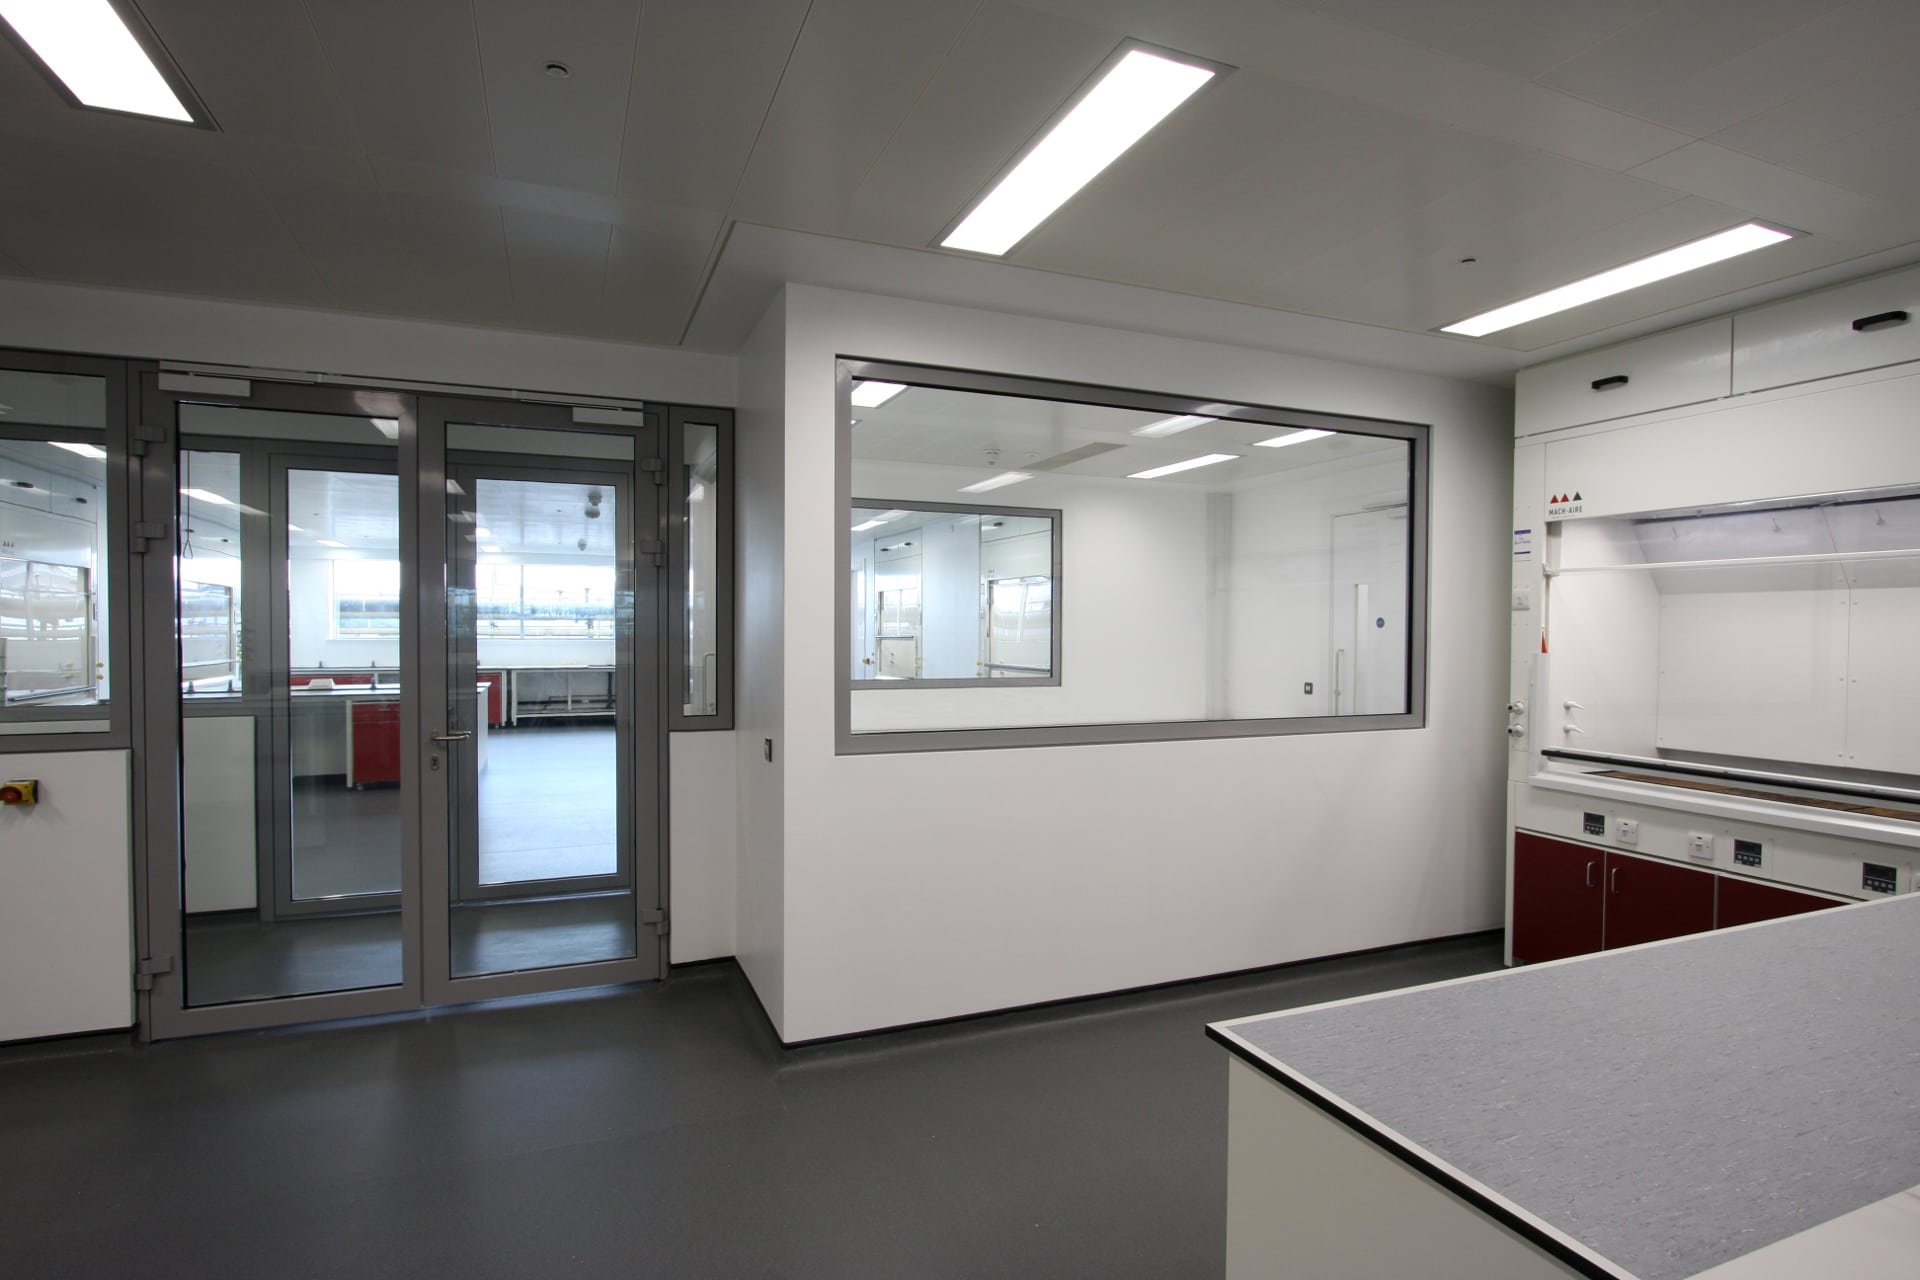 fire rated glass to laboratory interior